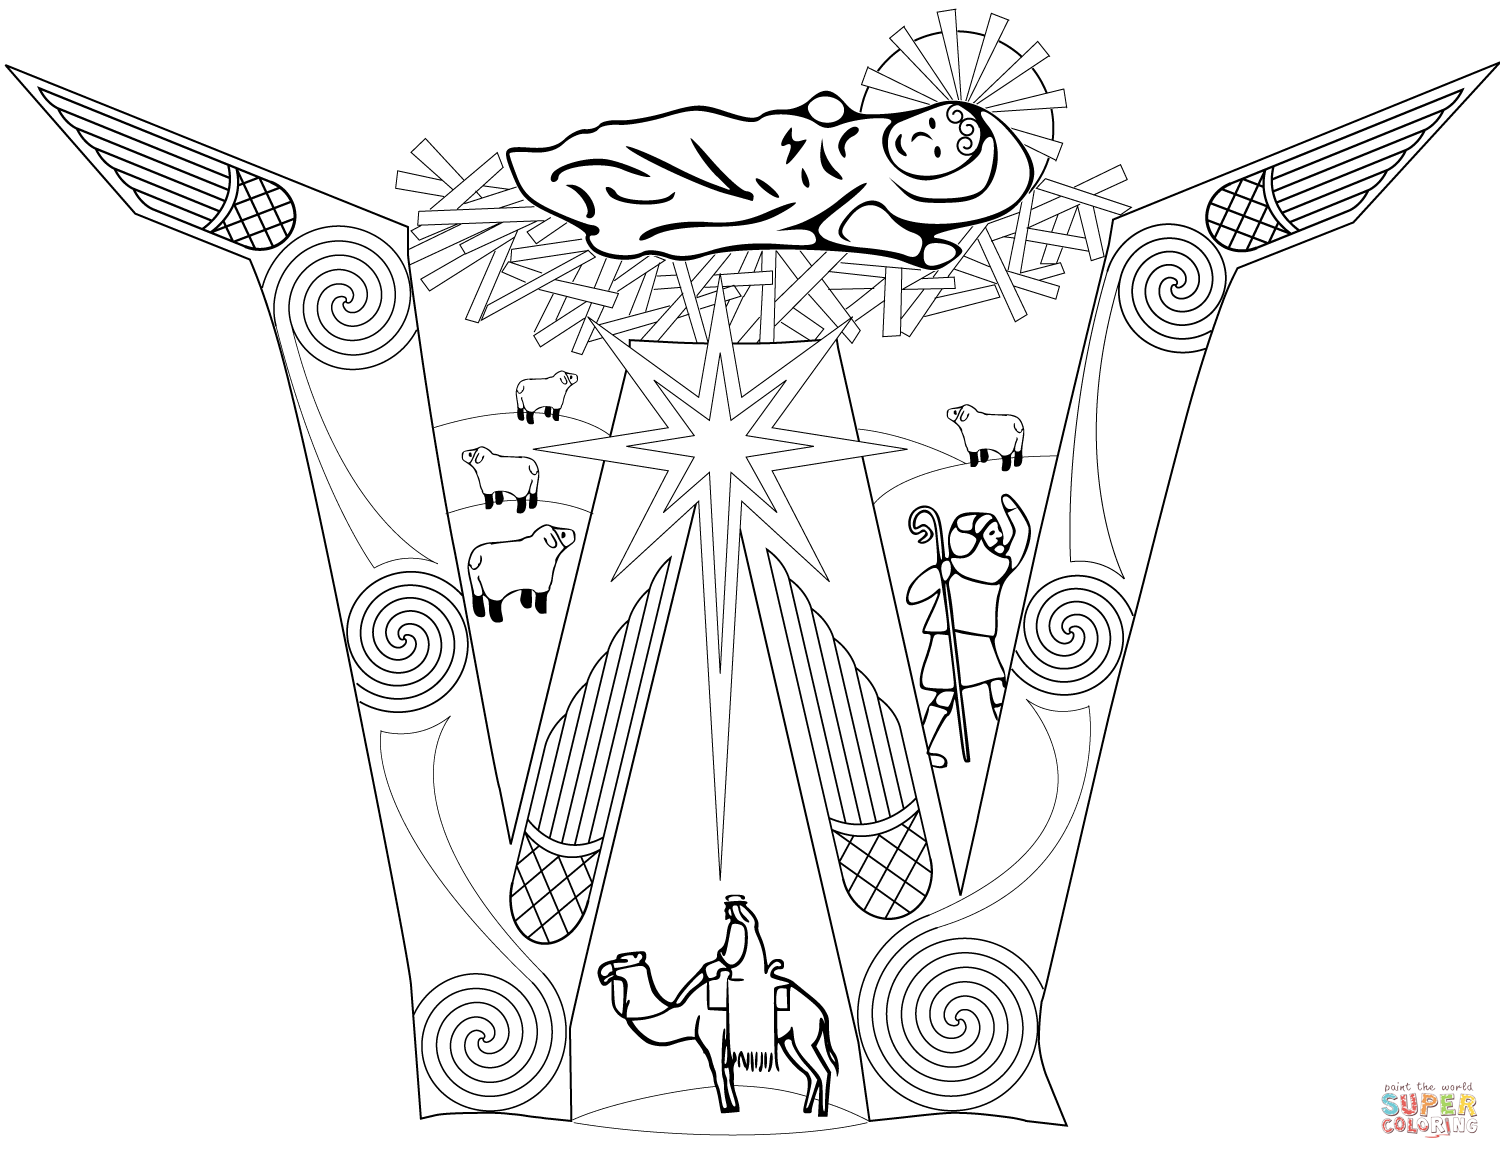 1500x1159 Letter W With Nativity Scene Coloring Page Free Printable